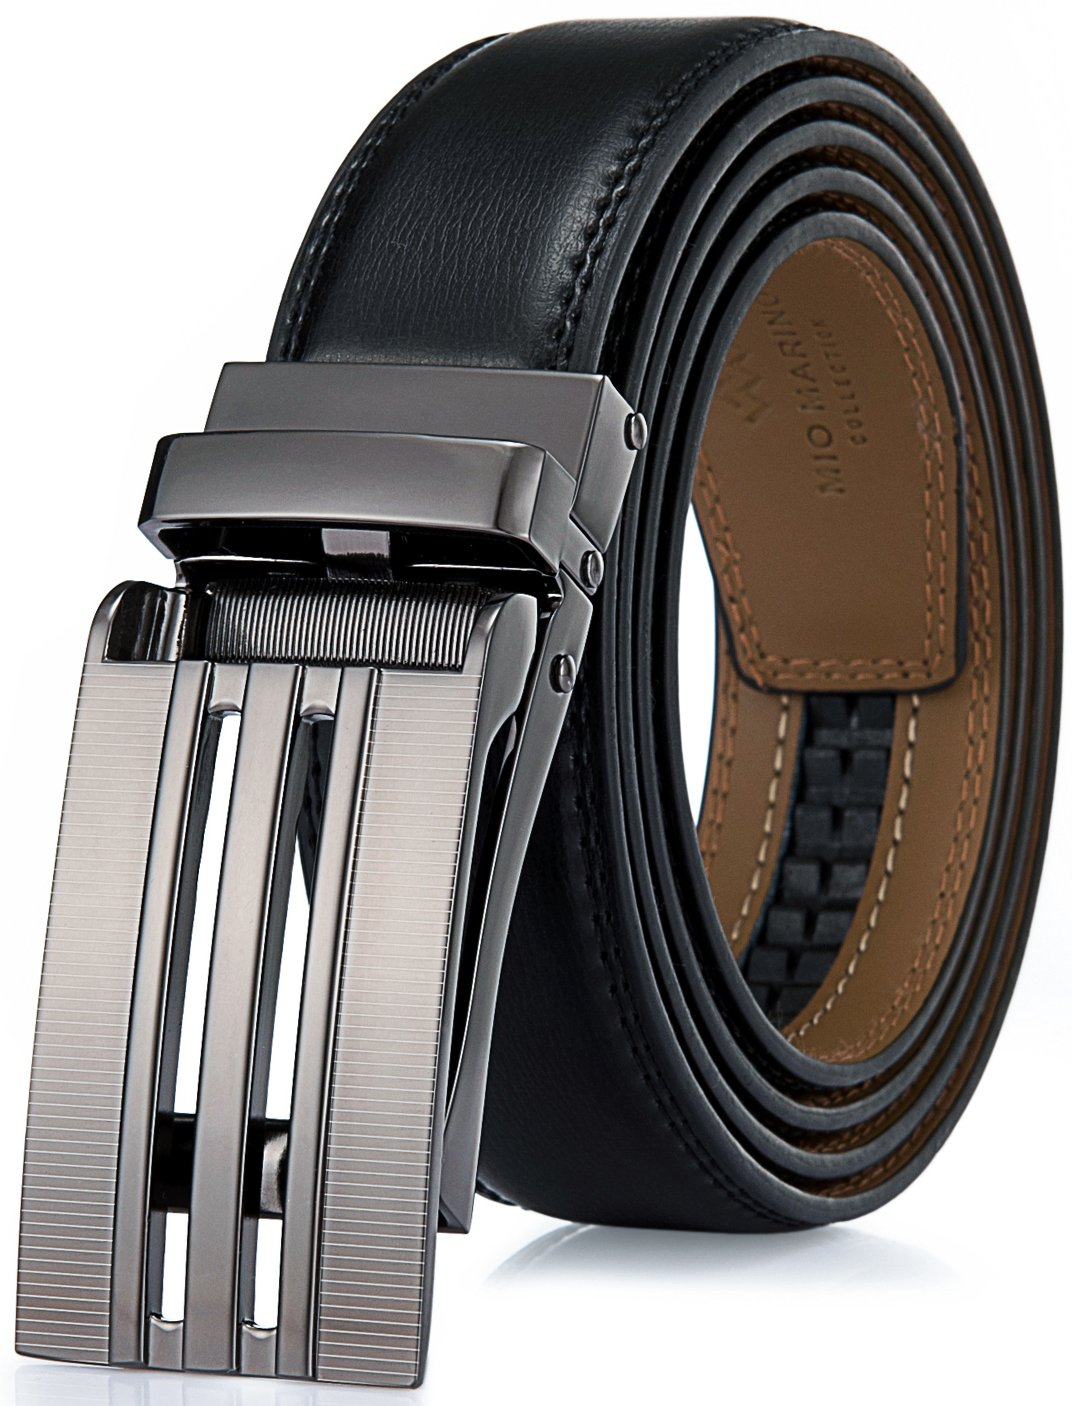 "Marino Avenue Men's Genuine Leather Ratchet Dress Belt with Linxx Buckle - Gift Box (Panel Striped - Black, Adjustable from 38"" to 54"" Waist)"